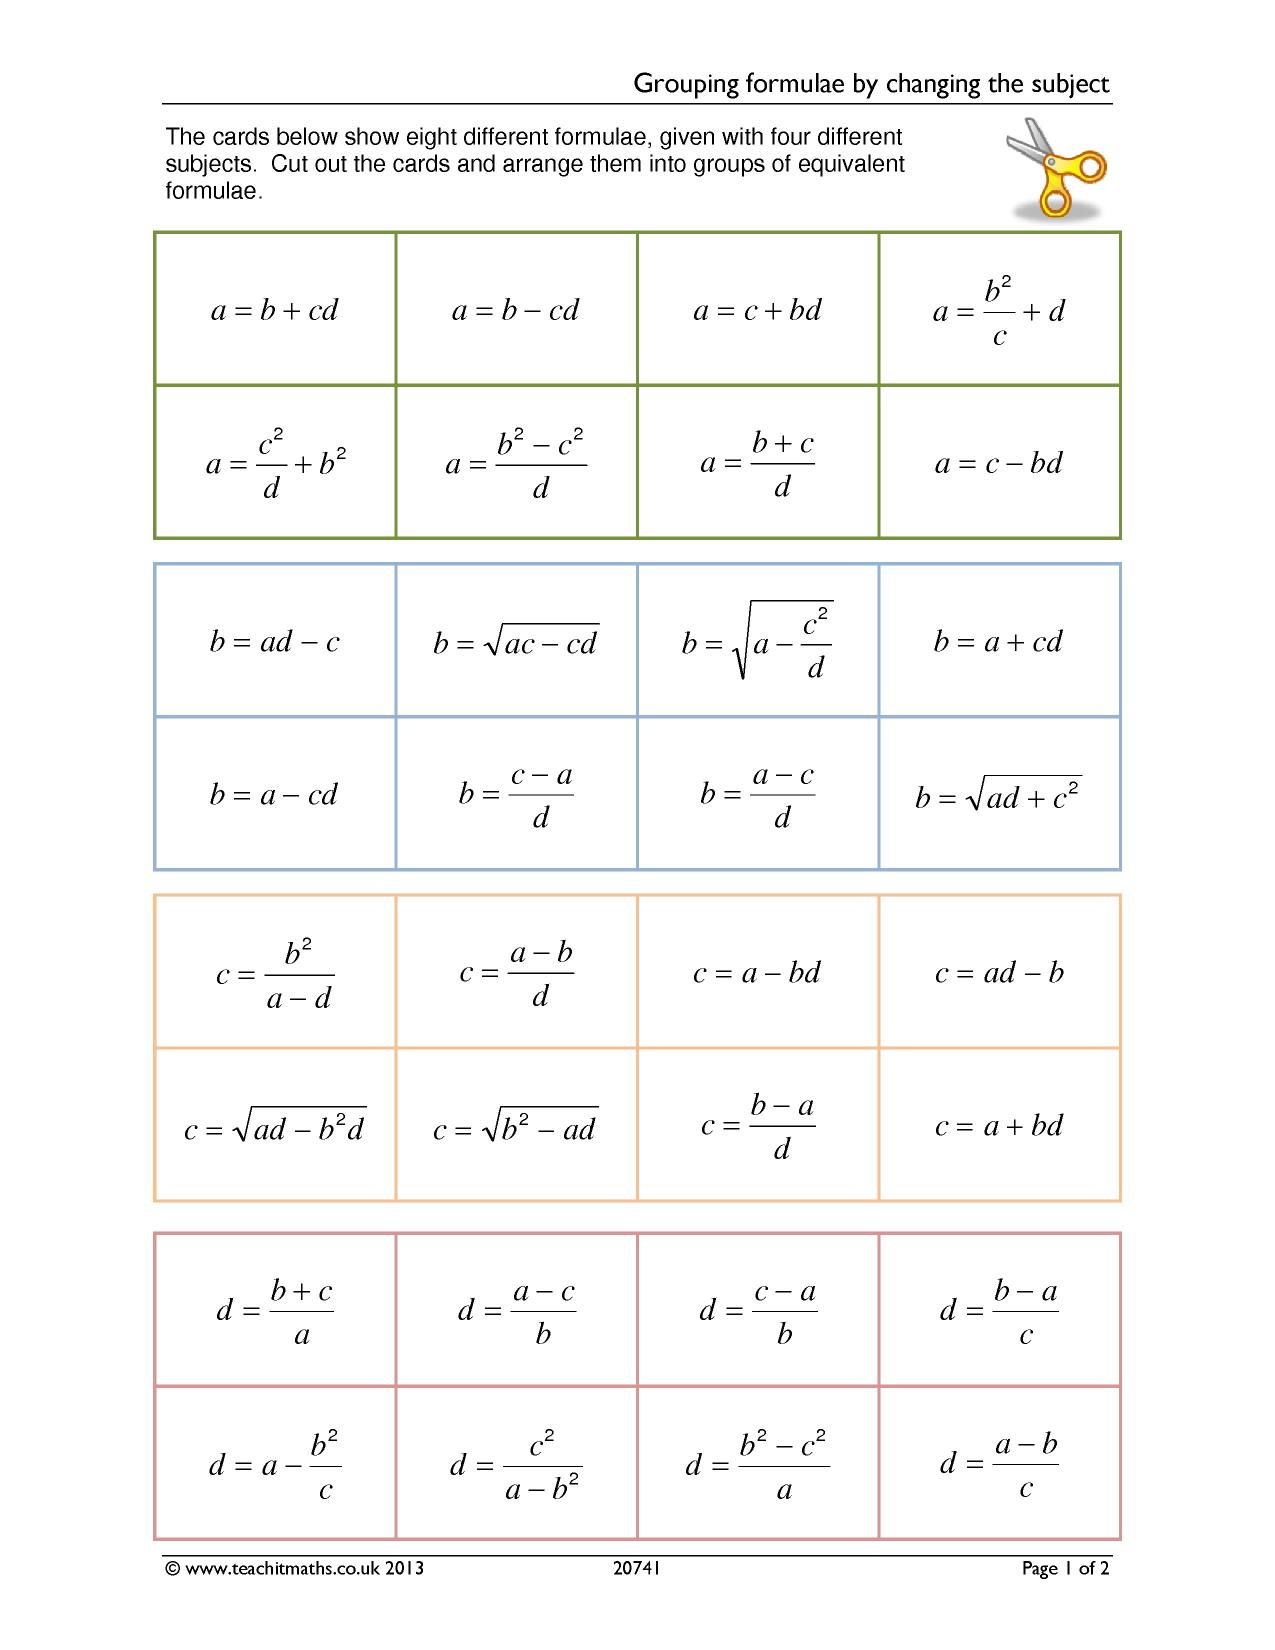 Grouping Formulae By Changing The Subject